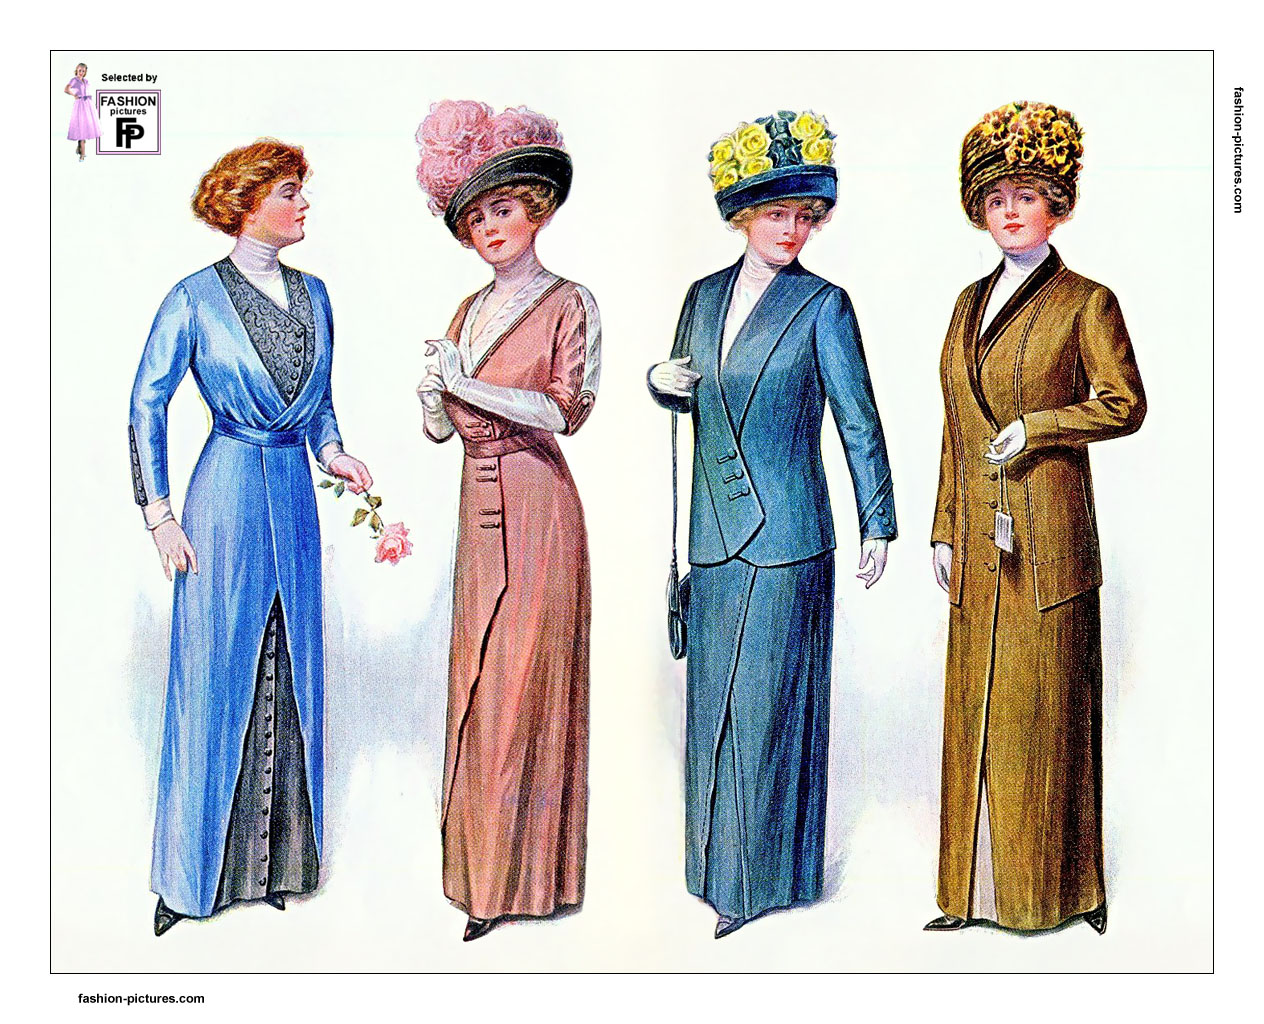 87fba0a4a59 1910s fashion. Women s dresses and outfits in 1910 and 1912 ...